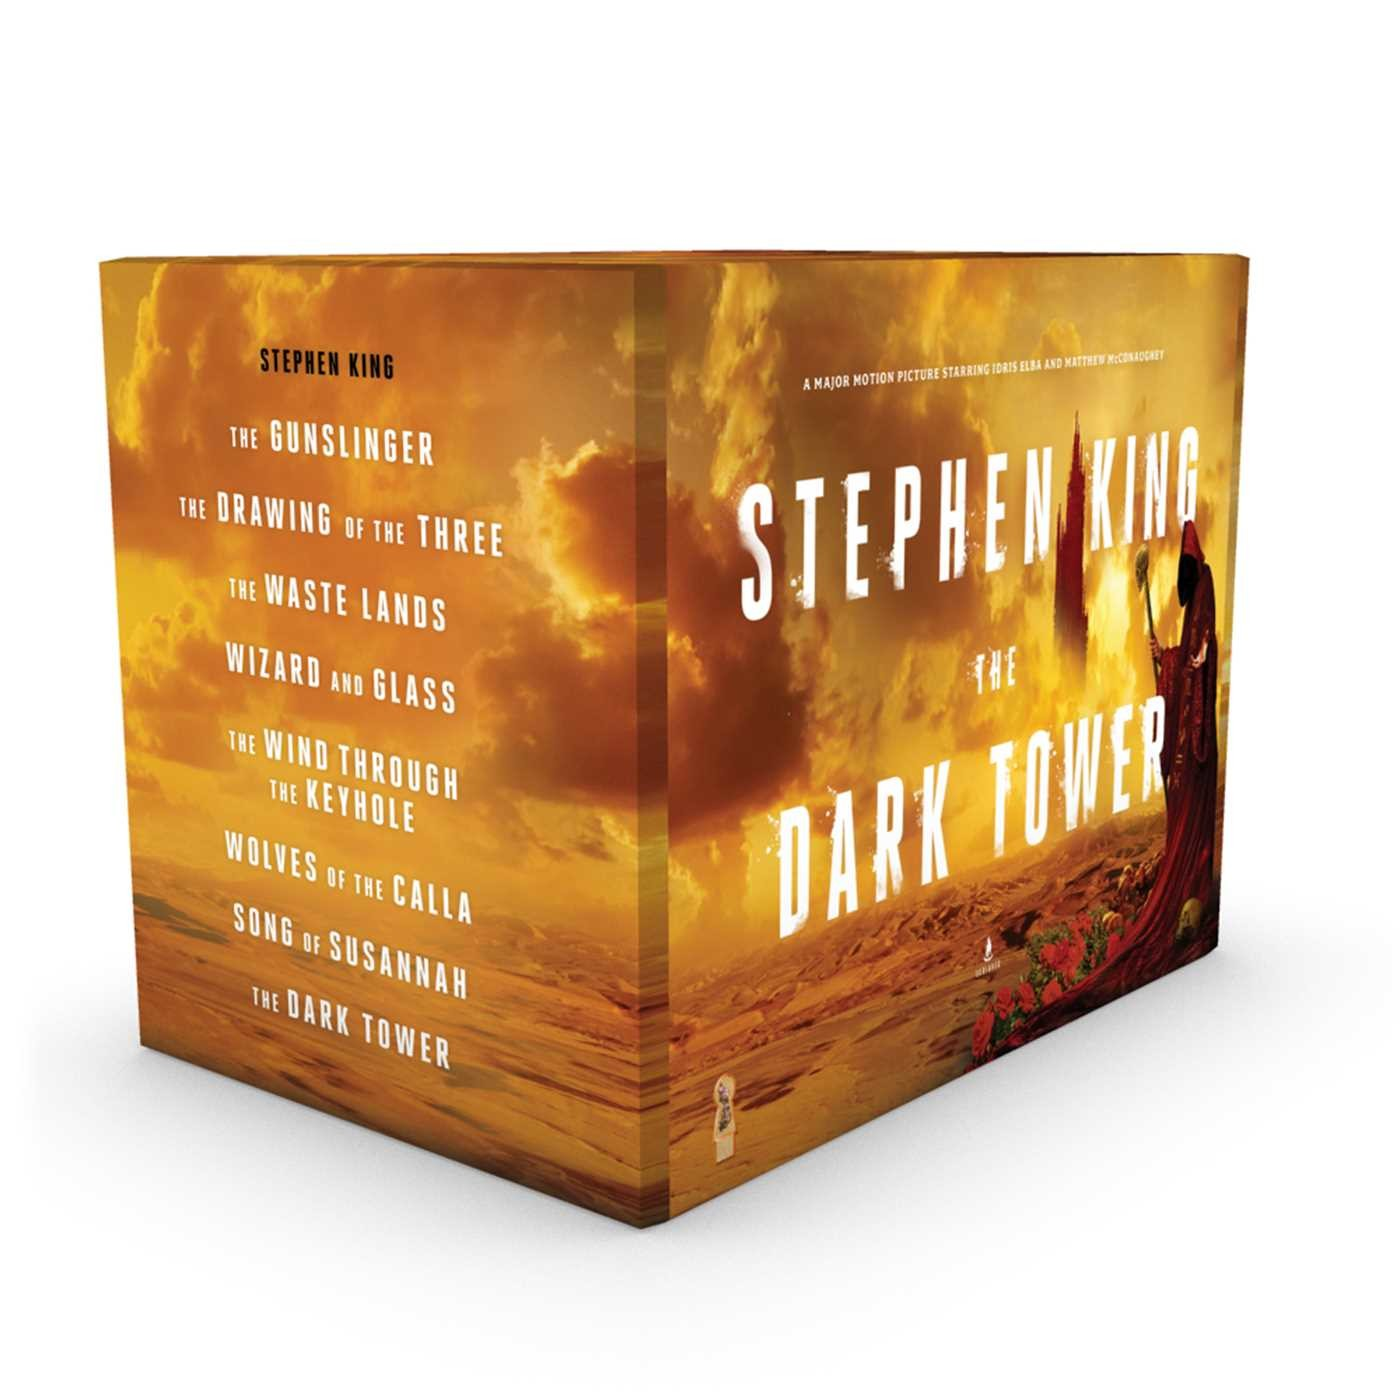 The dark tower boxed set 9781501163562.in17